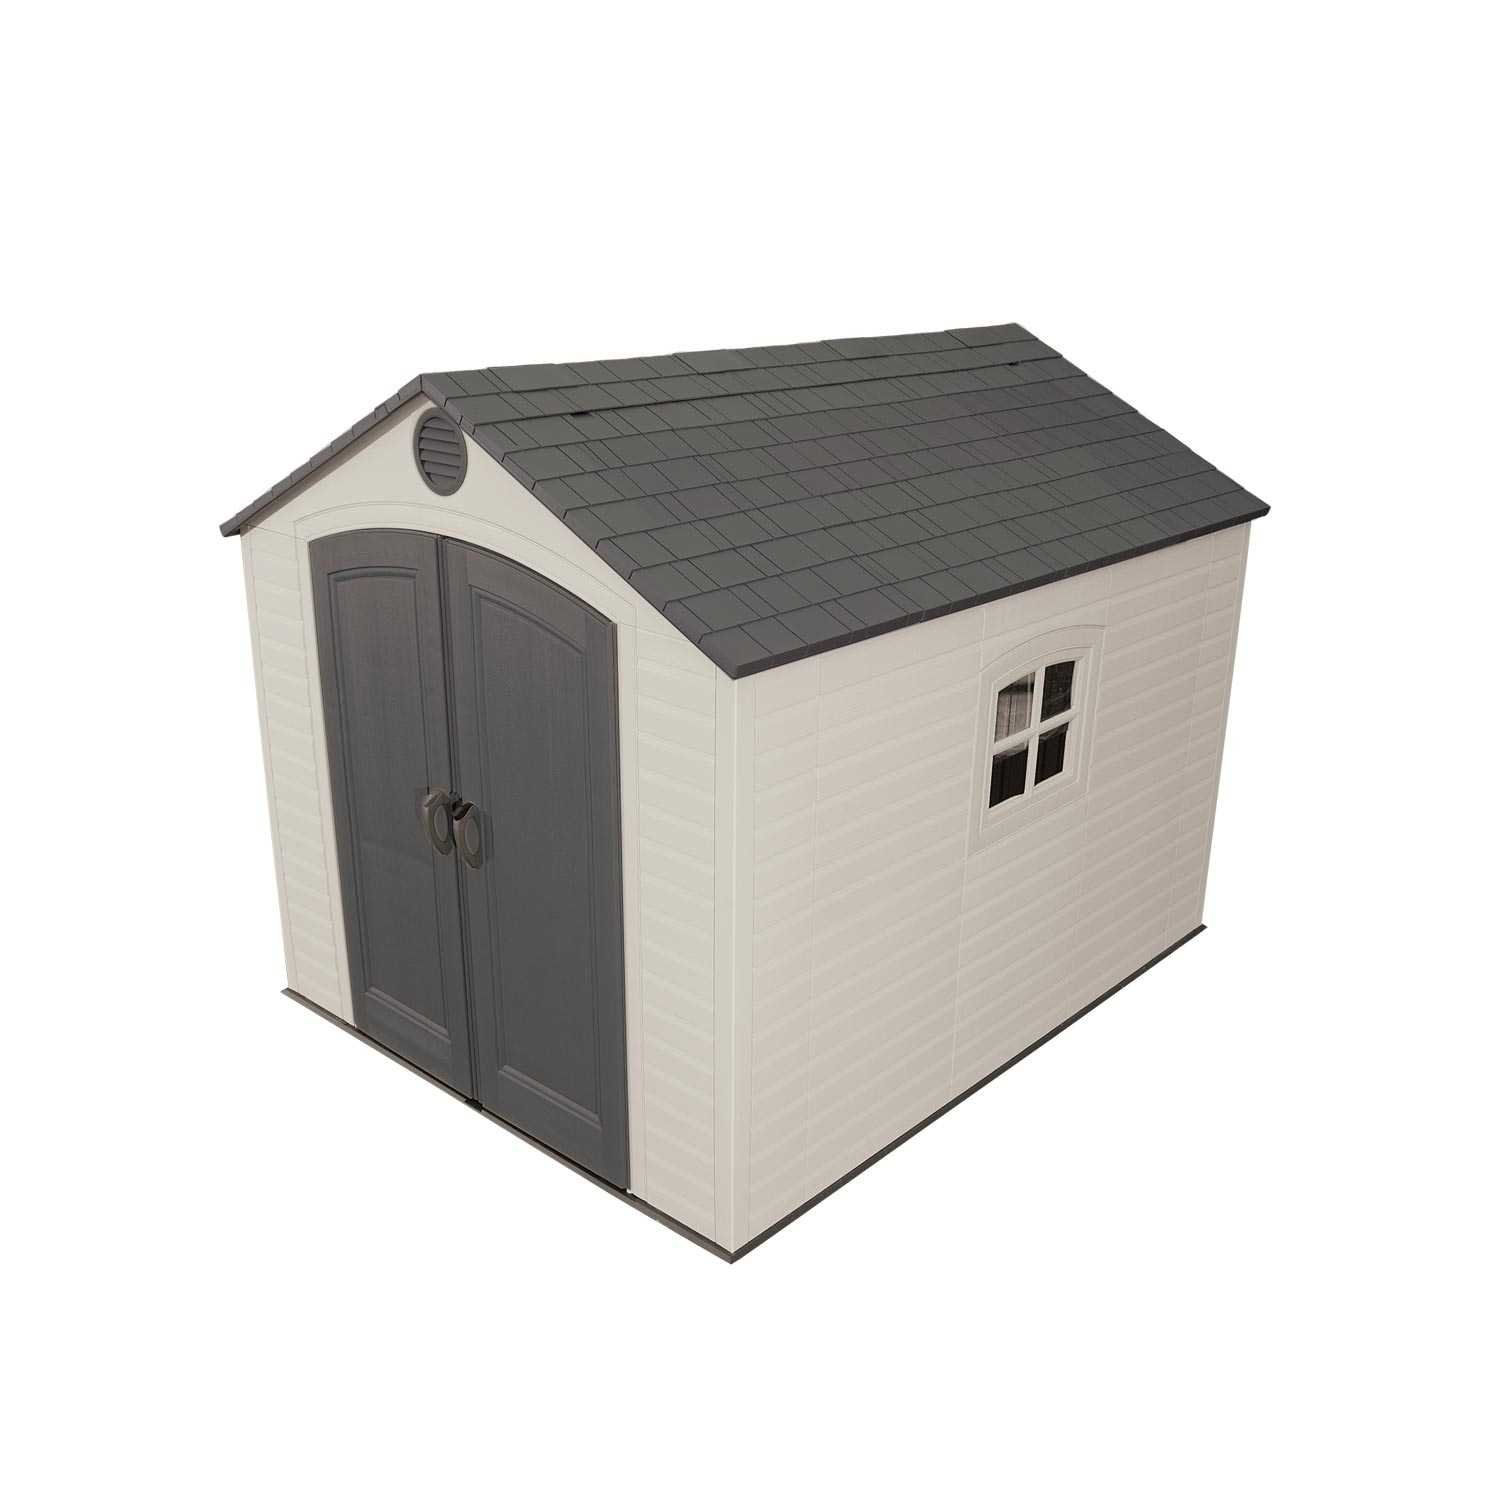 amazoncom lifetime 6405 outdoor storage shed with window skylights and shelving 8 by 10 feet garden shed garden outdoor